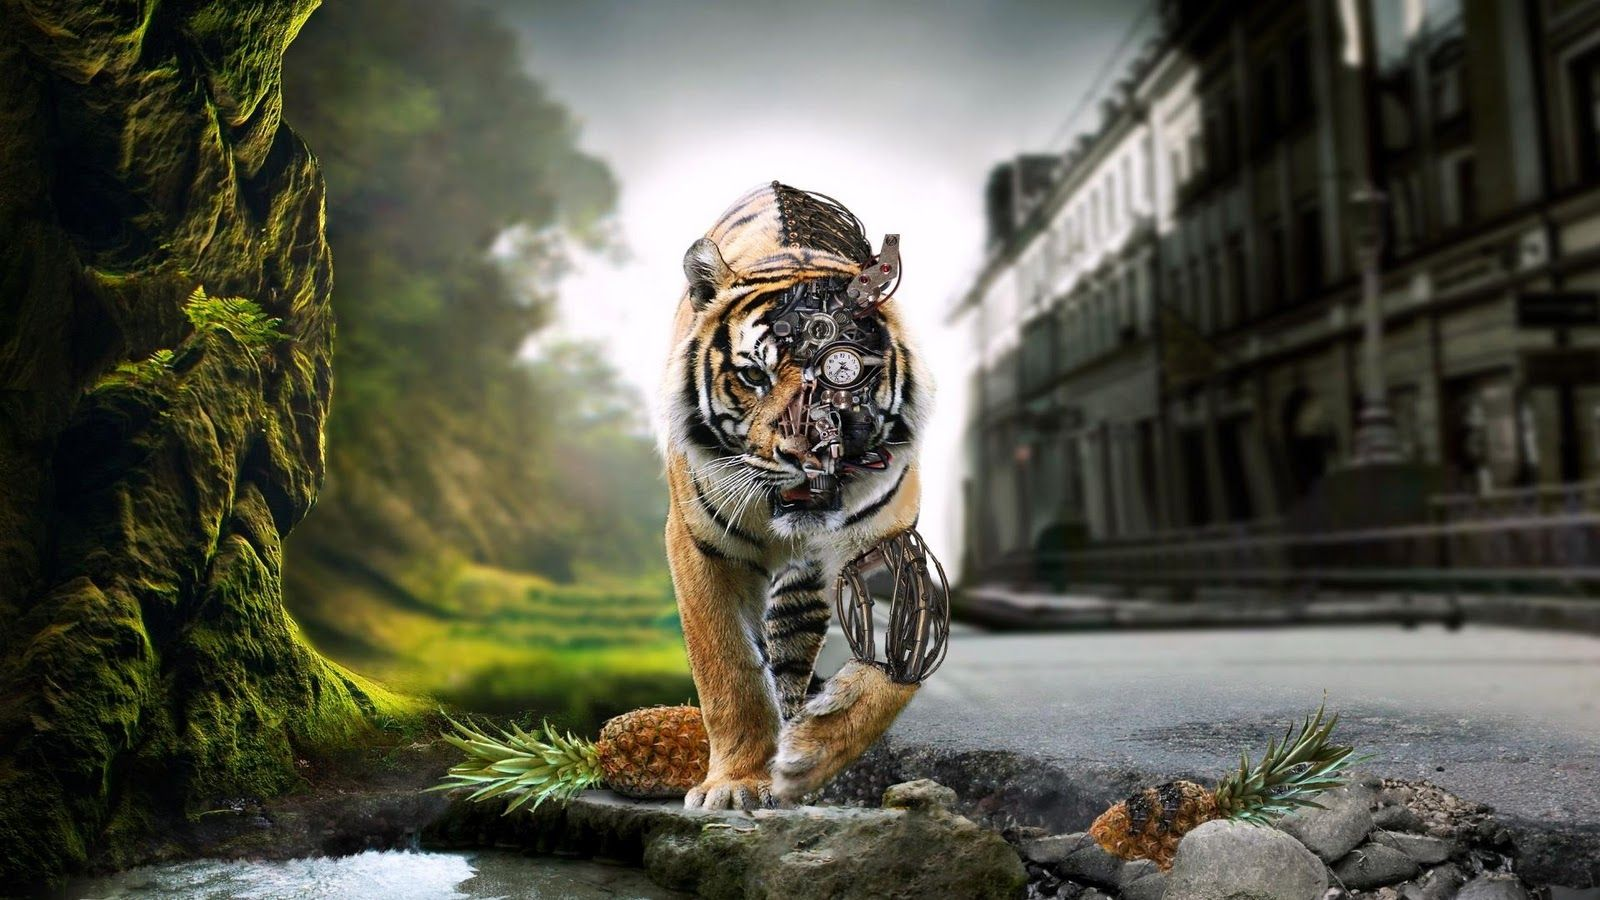 Digital art cyborg tiger digital art cyborg tiger art cyborg digital games gaming tiger wallpaper desktopwallpaper hdwallpaper gaming games altavistaventures